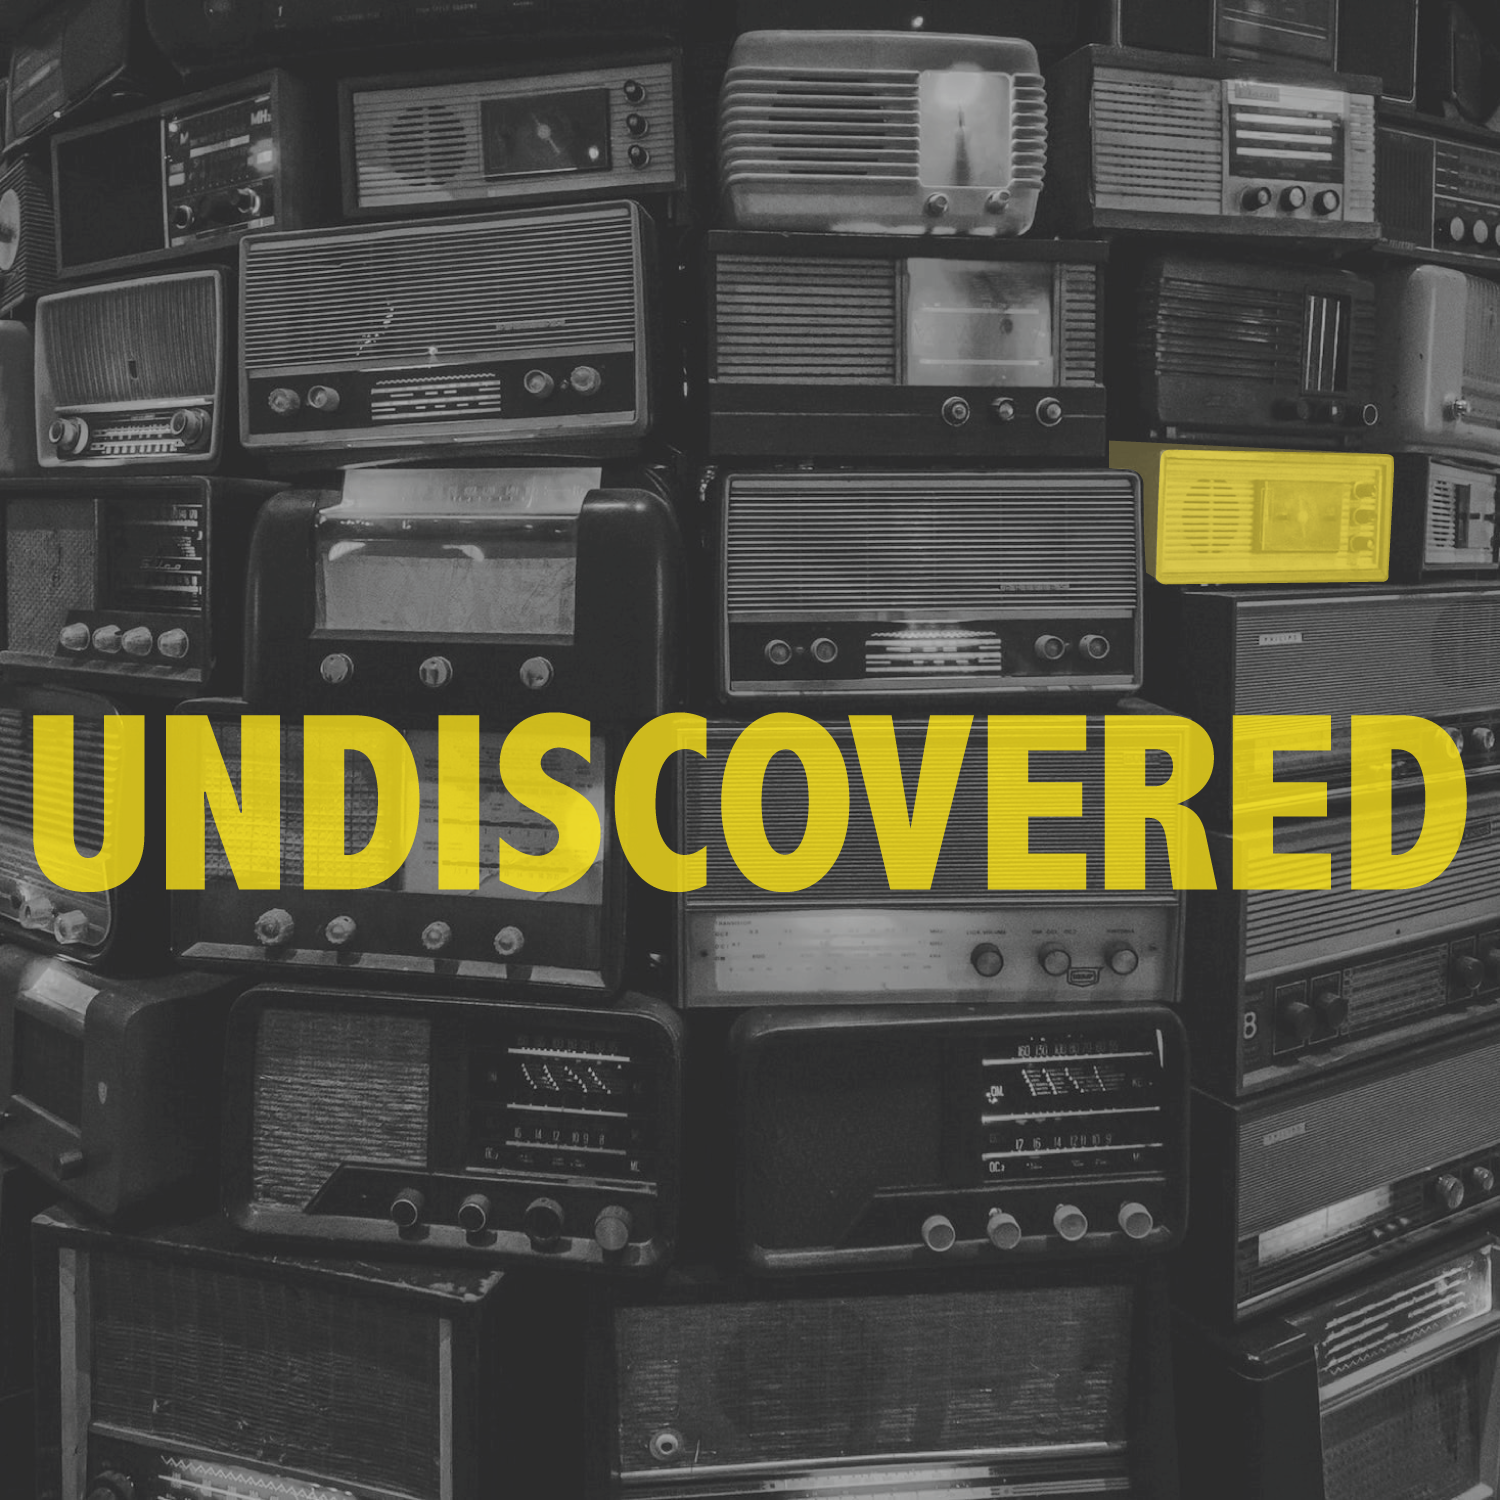 Undiscovered-mid-size.png